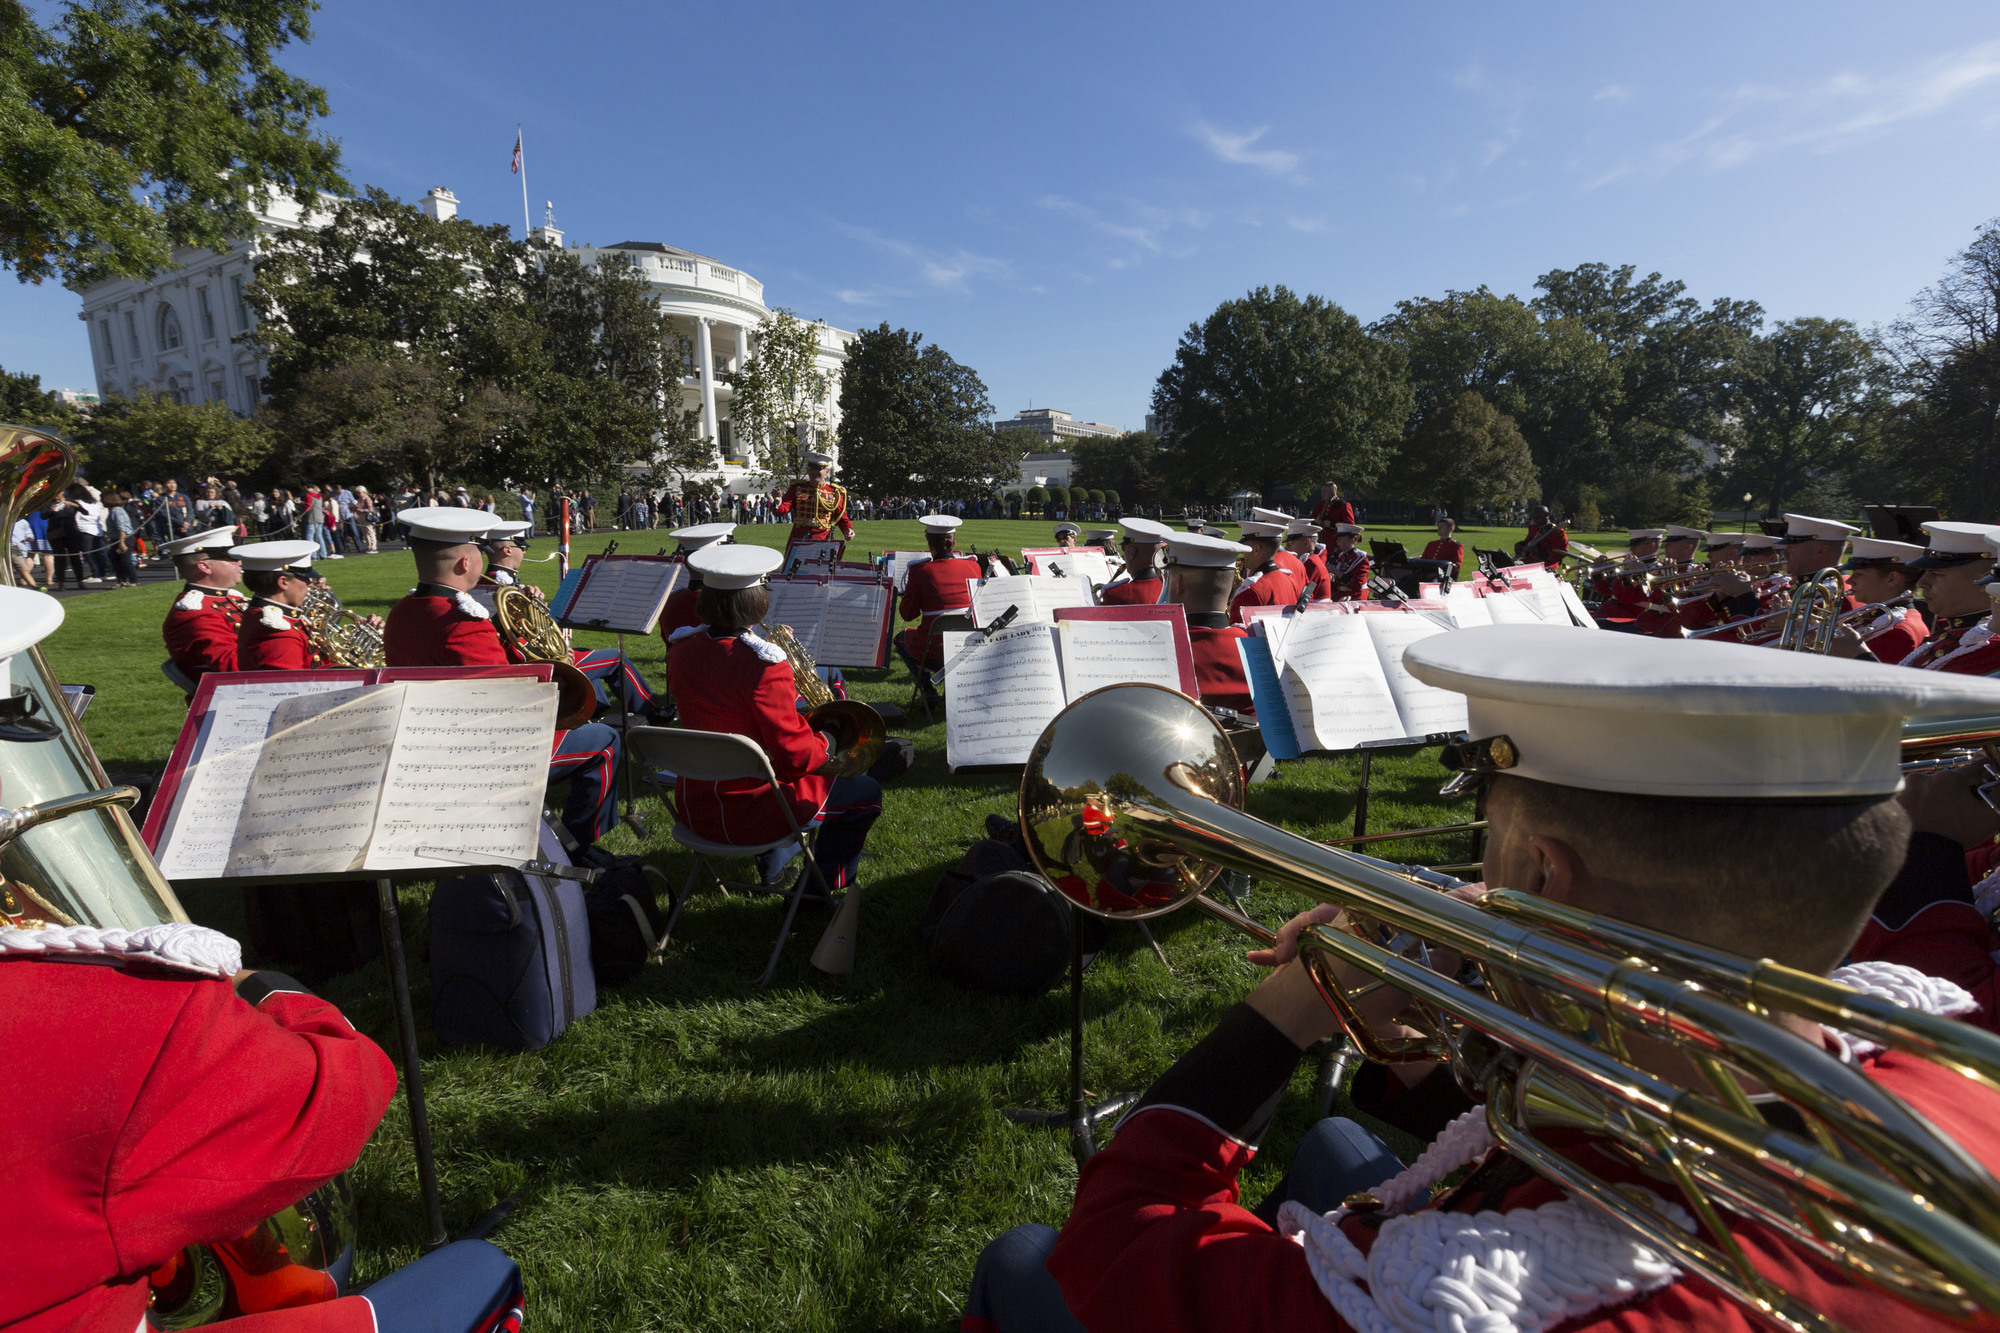 The Presidents Own Us Marine Band Perform For Visitors Viewing